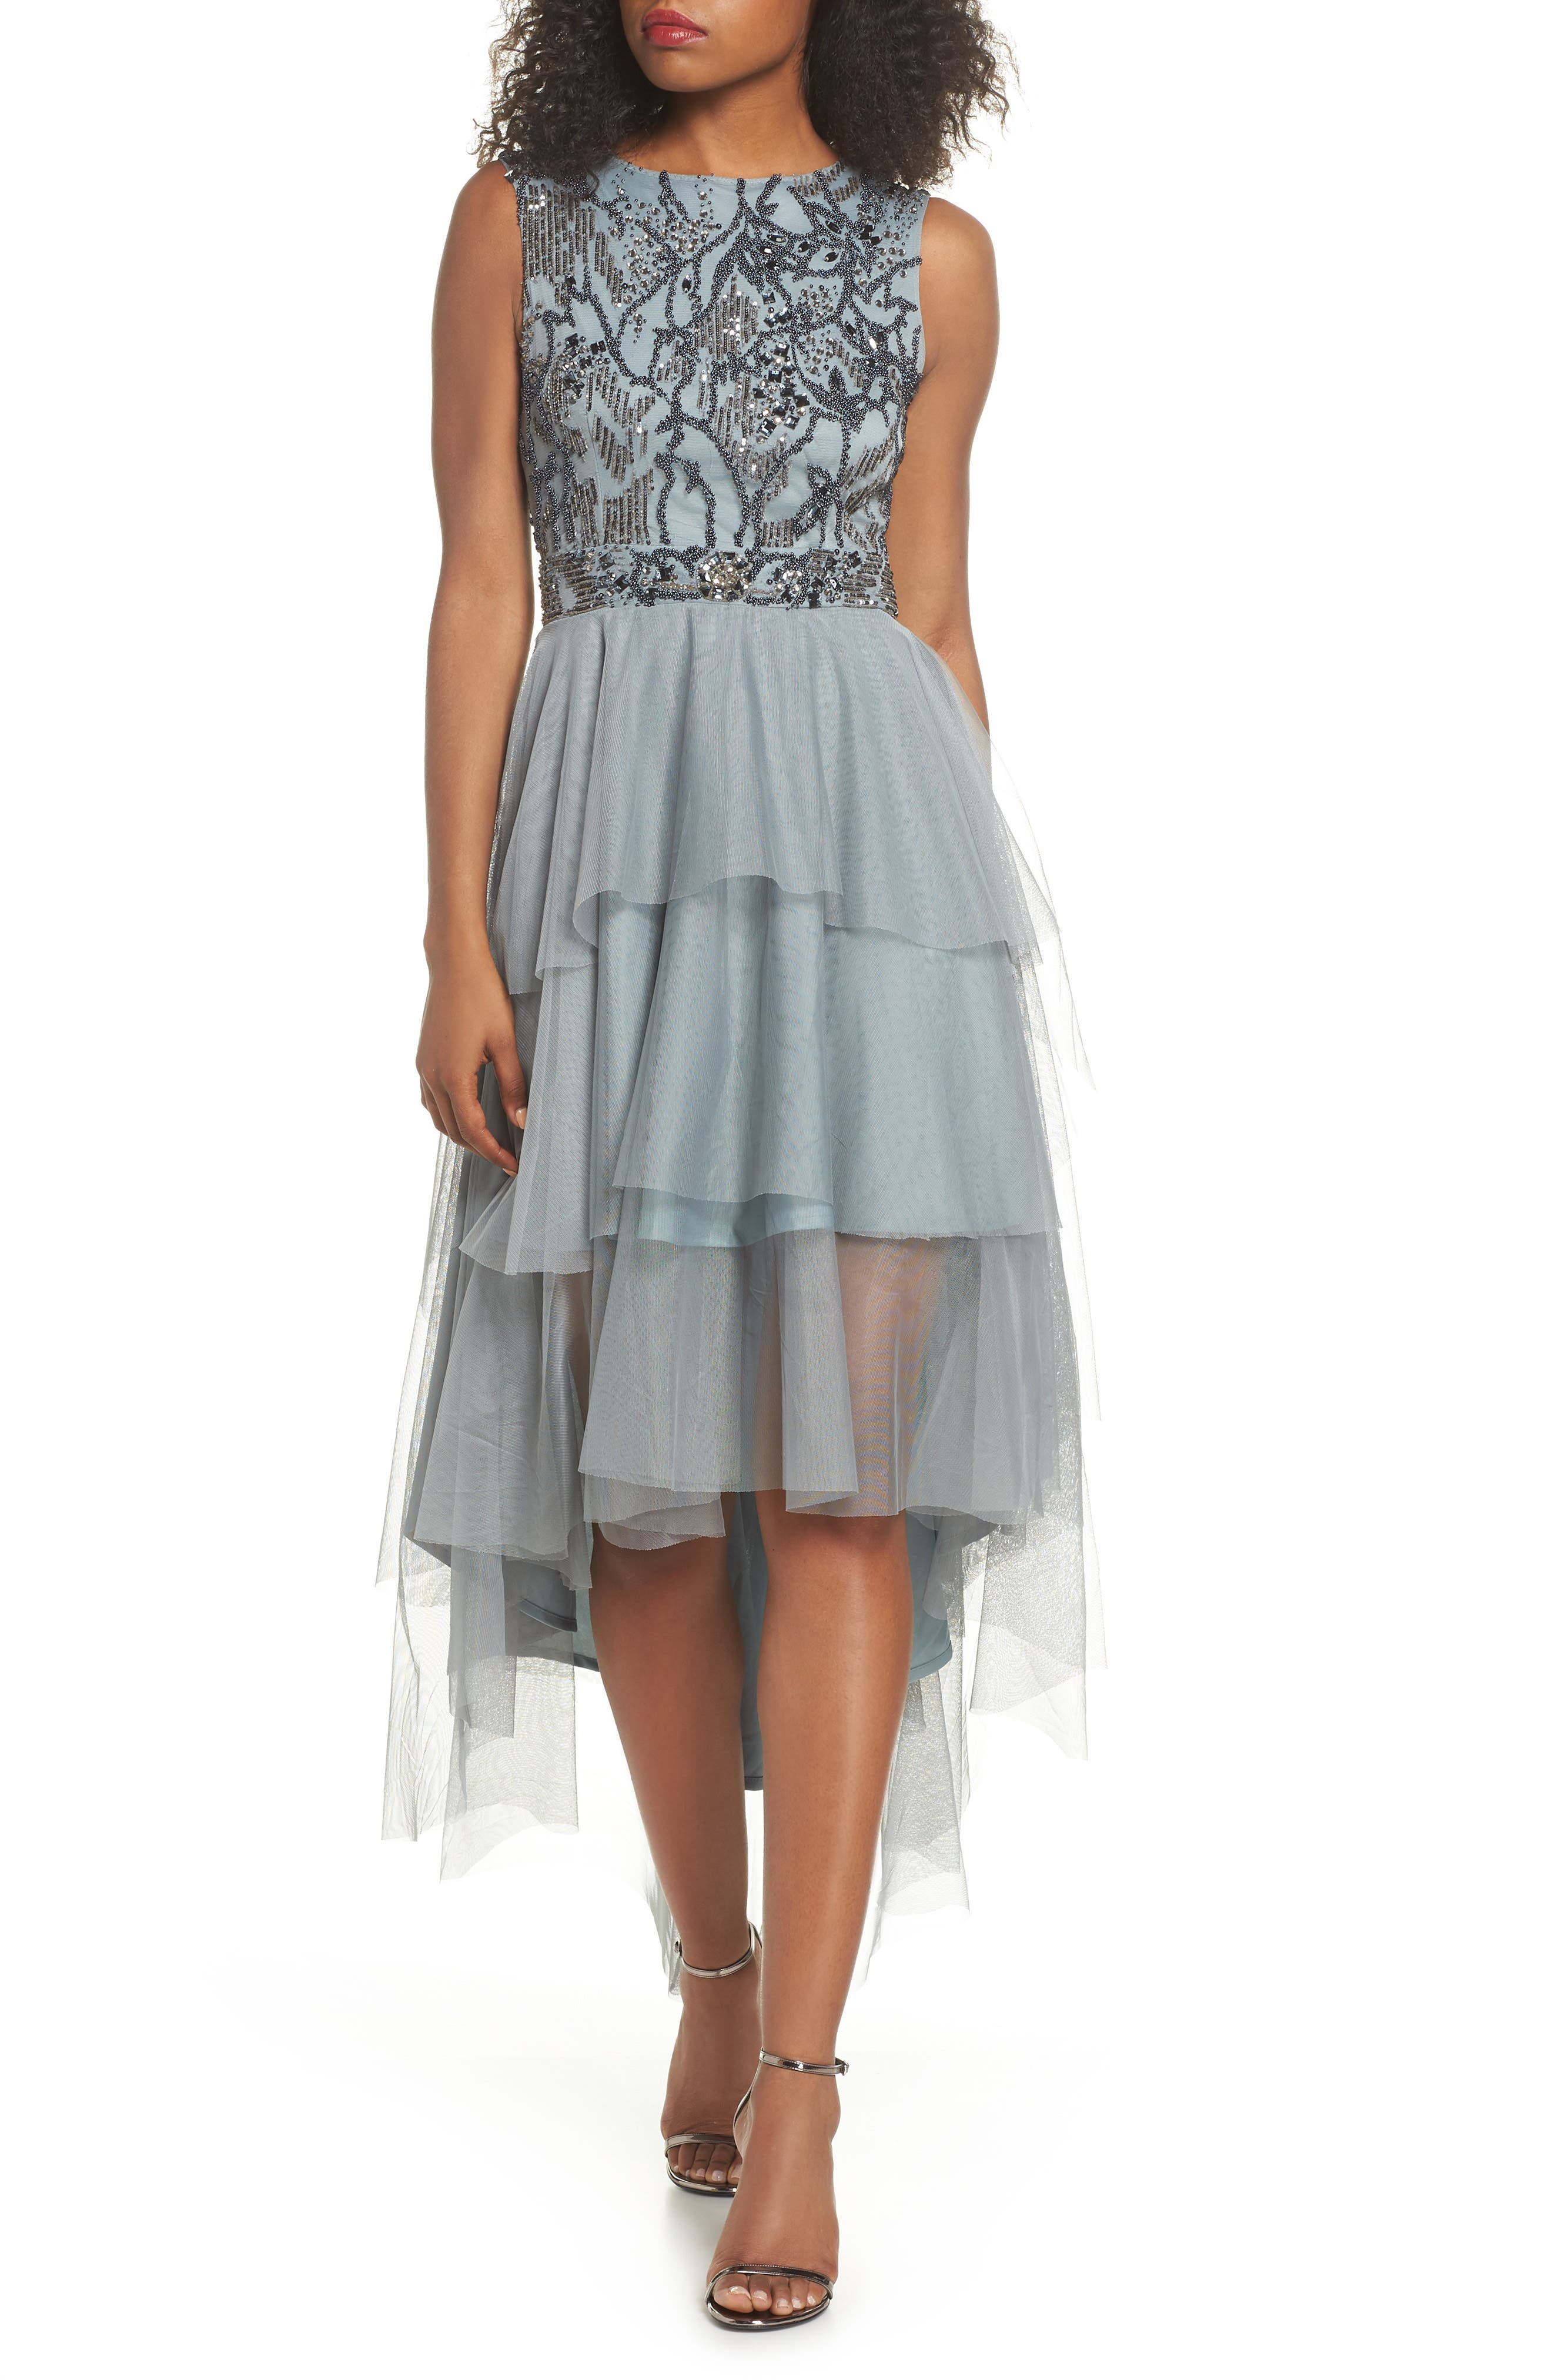 Lace & Beads Bridget Embellished Tiered Tulle Dress